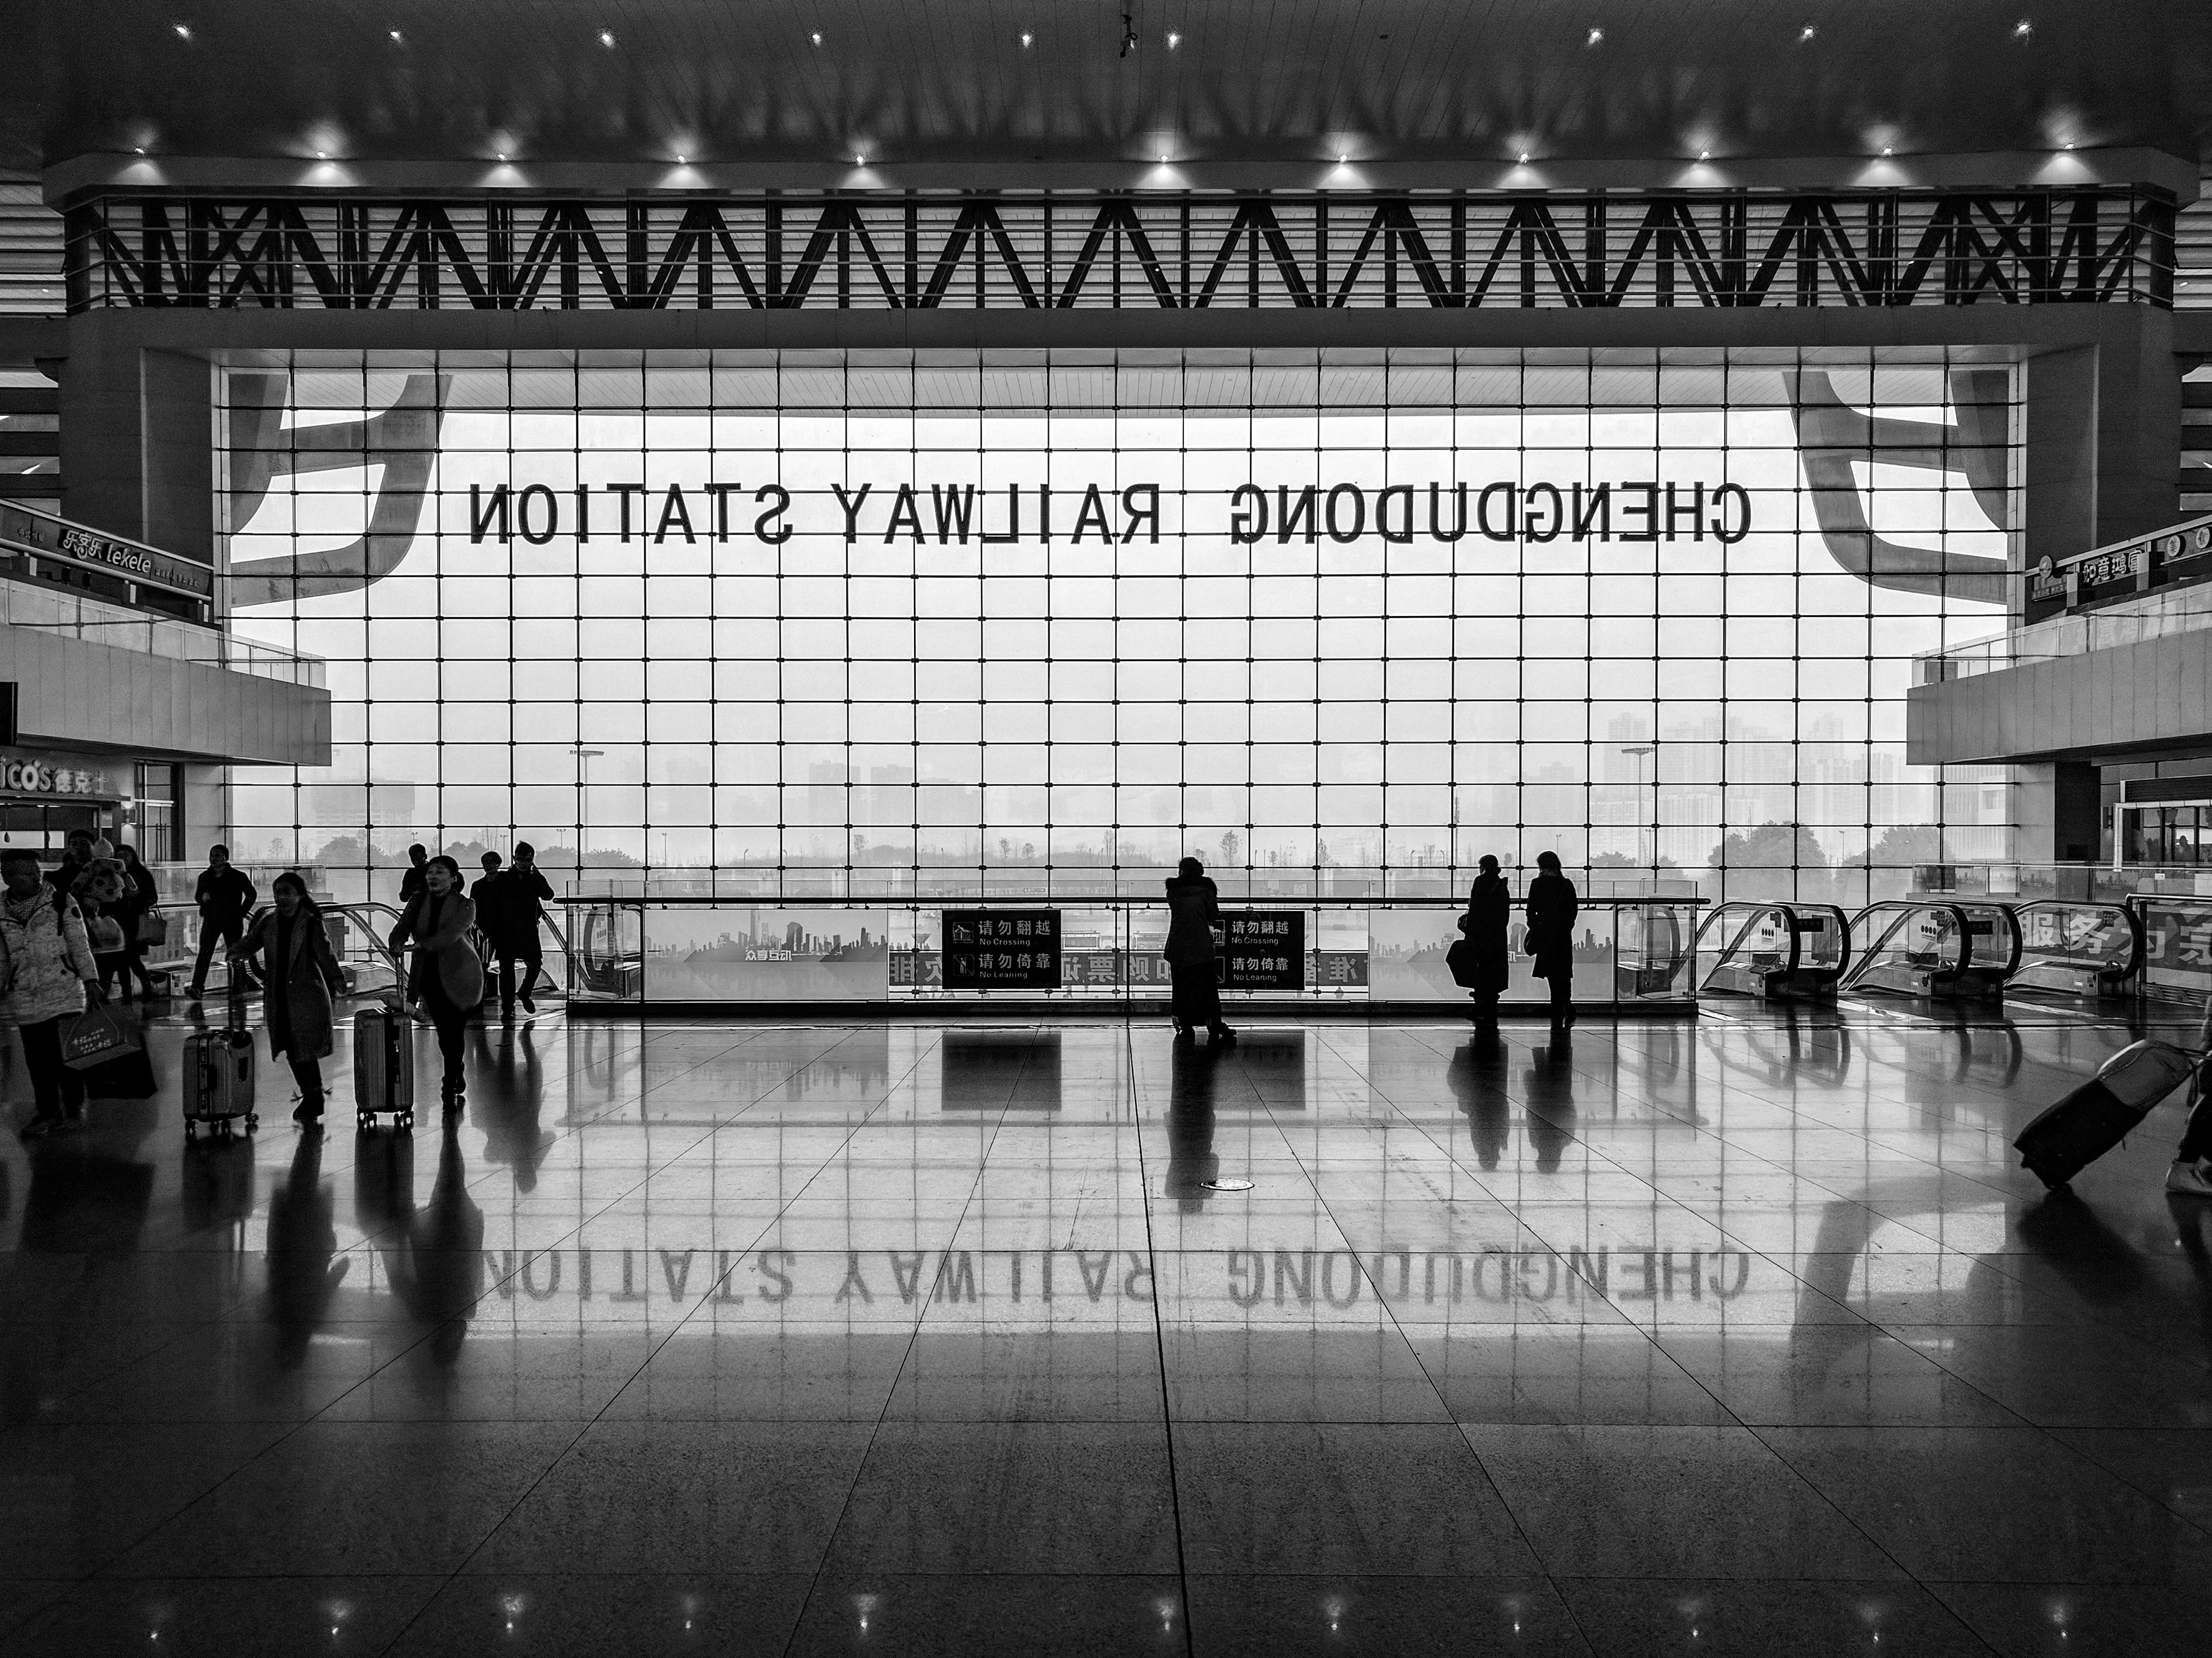 Black and white shot of station foyer with people and large window and reflection on floor